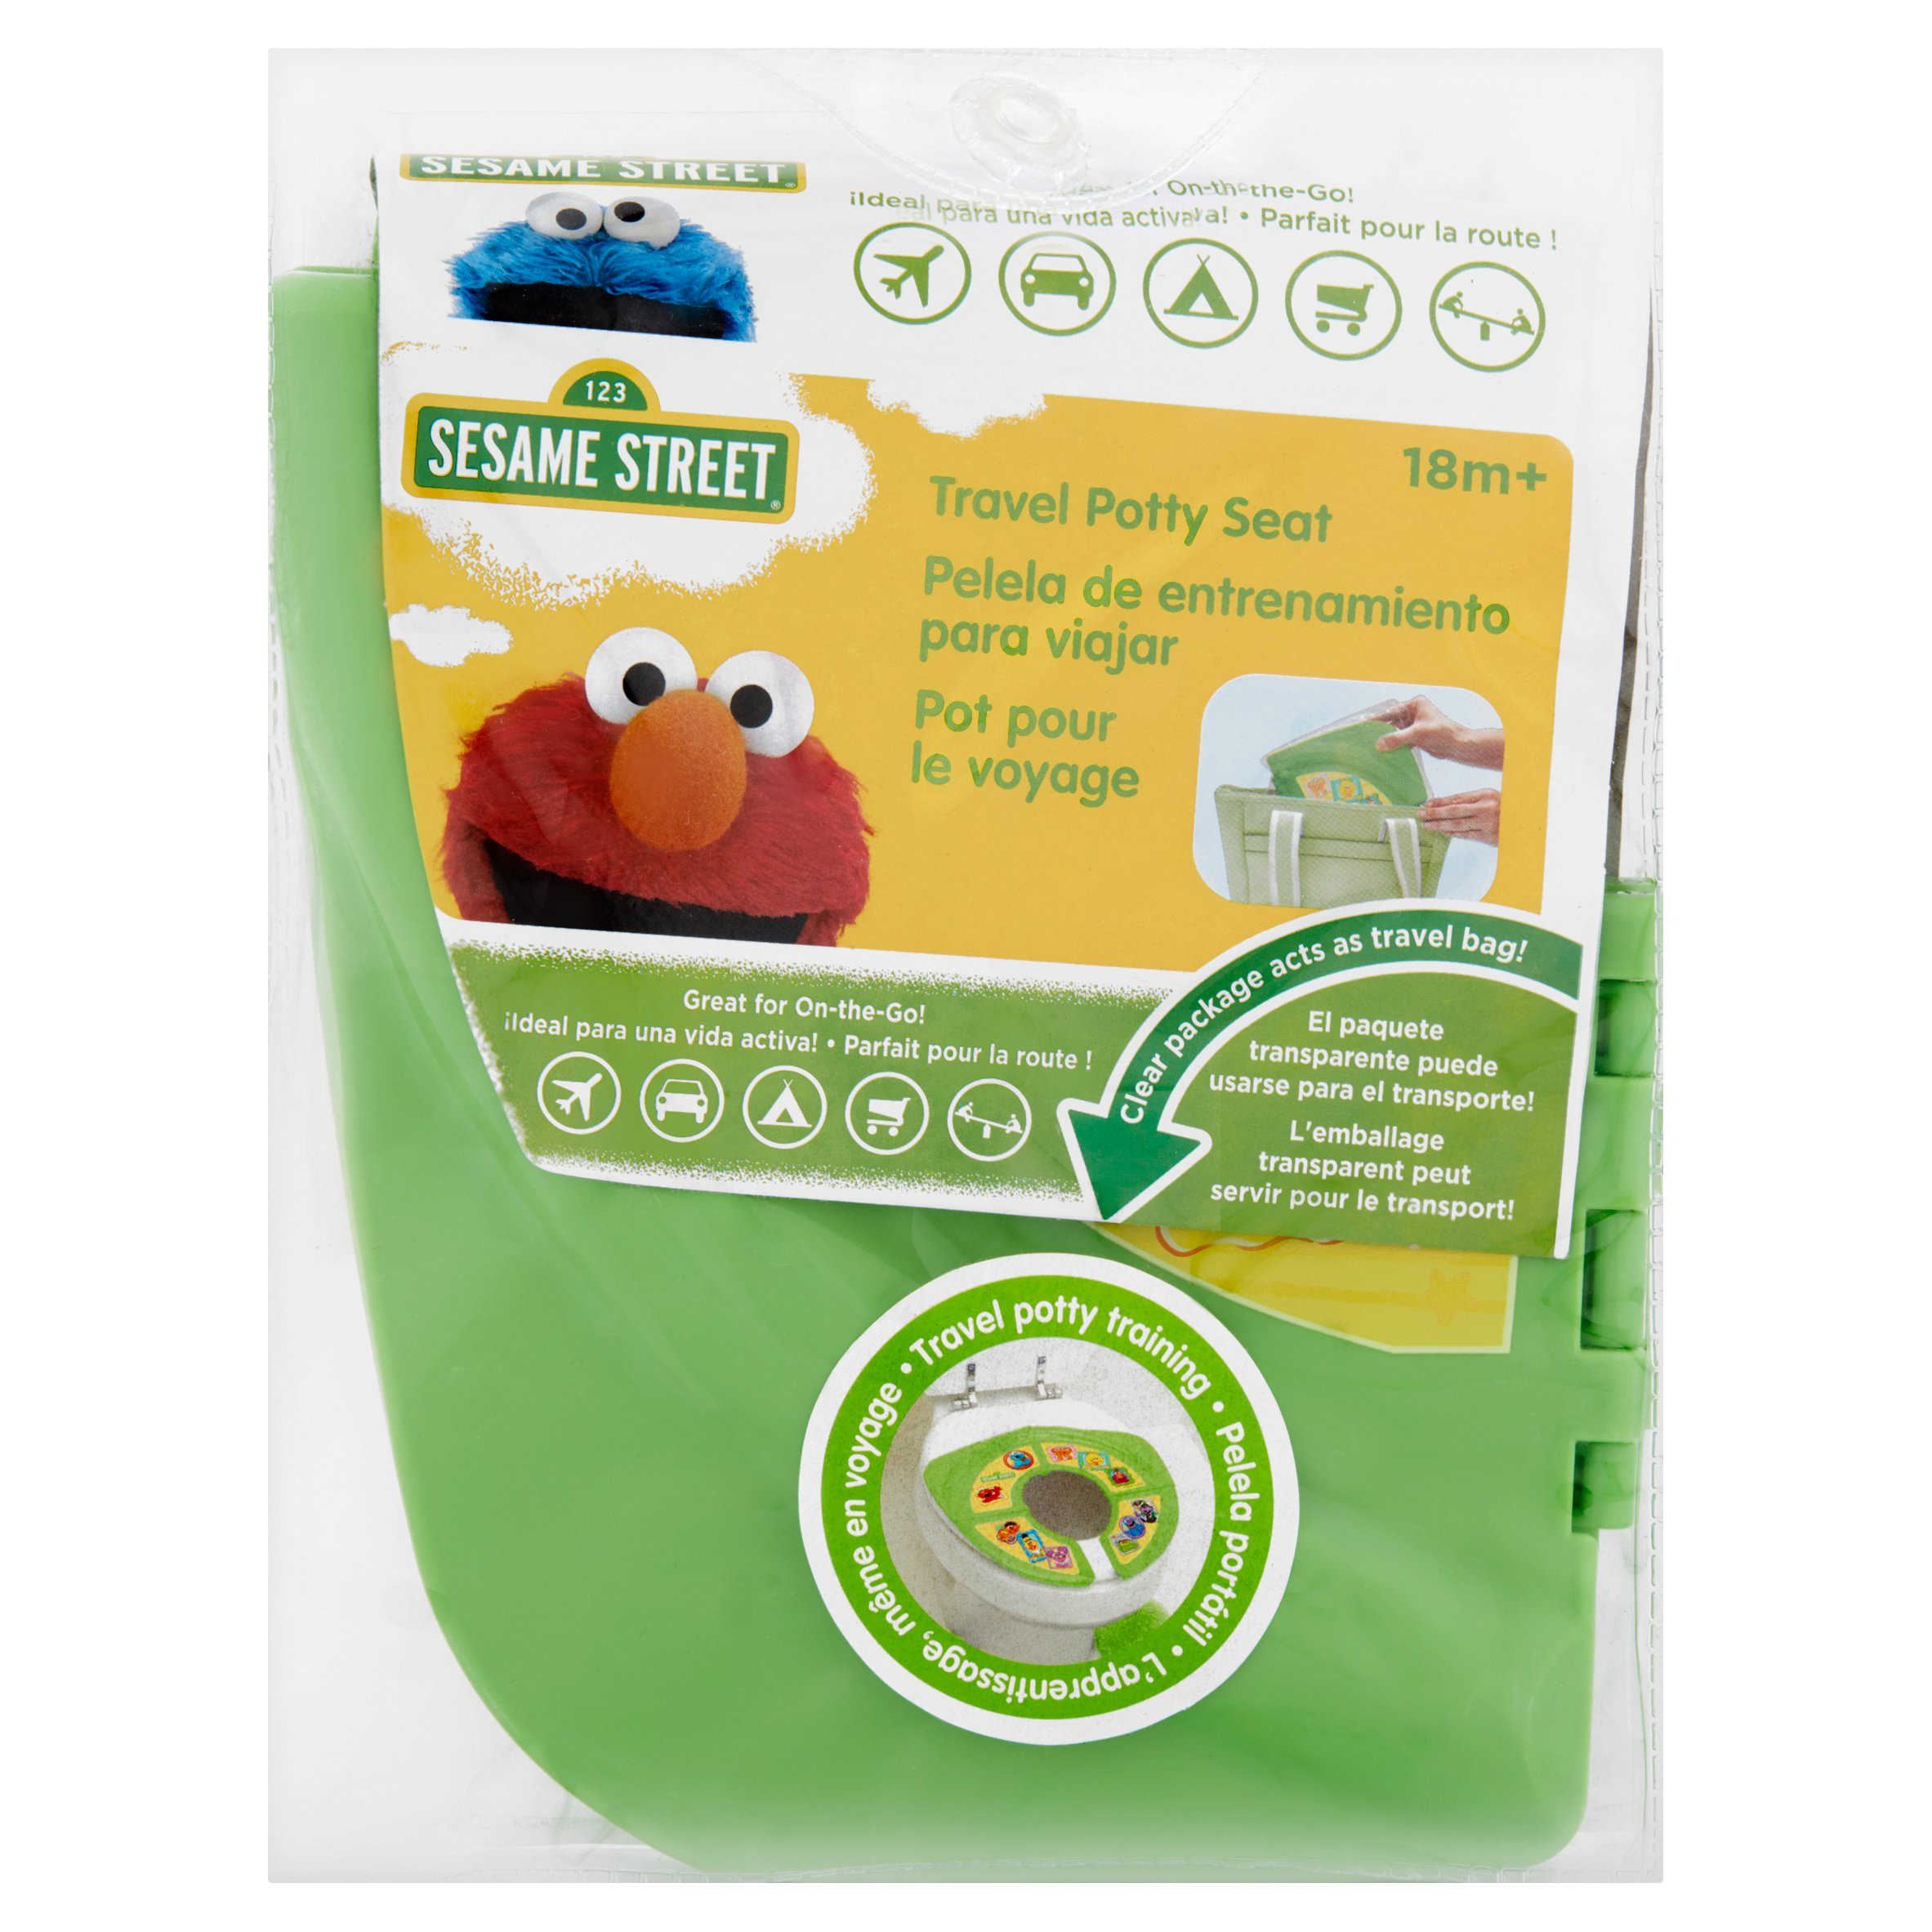 Sesame Street Travel Potty Seat 18m+